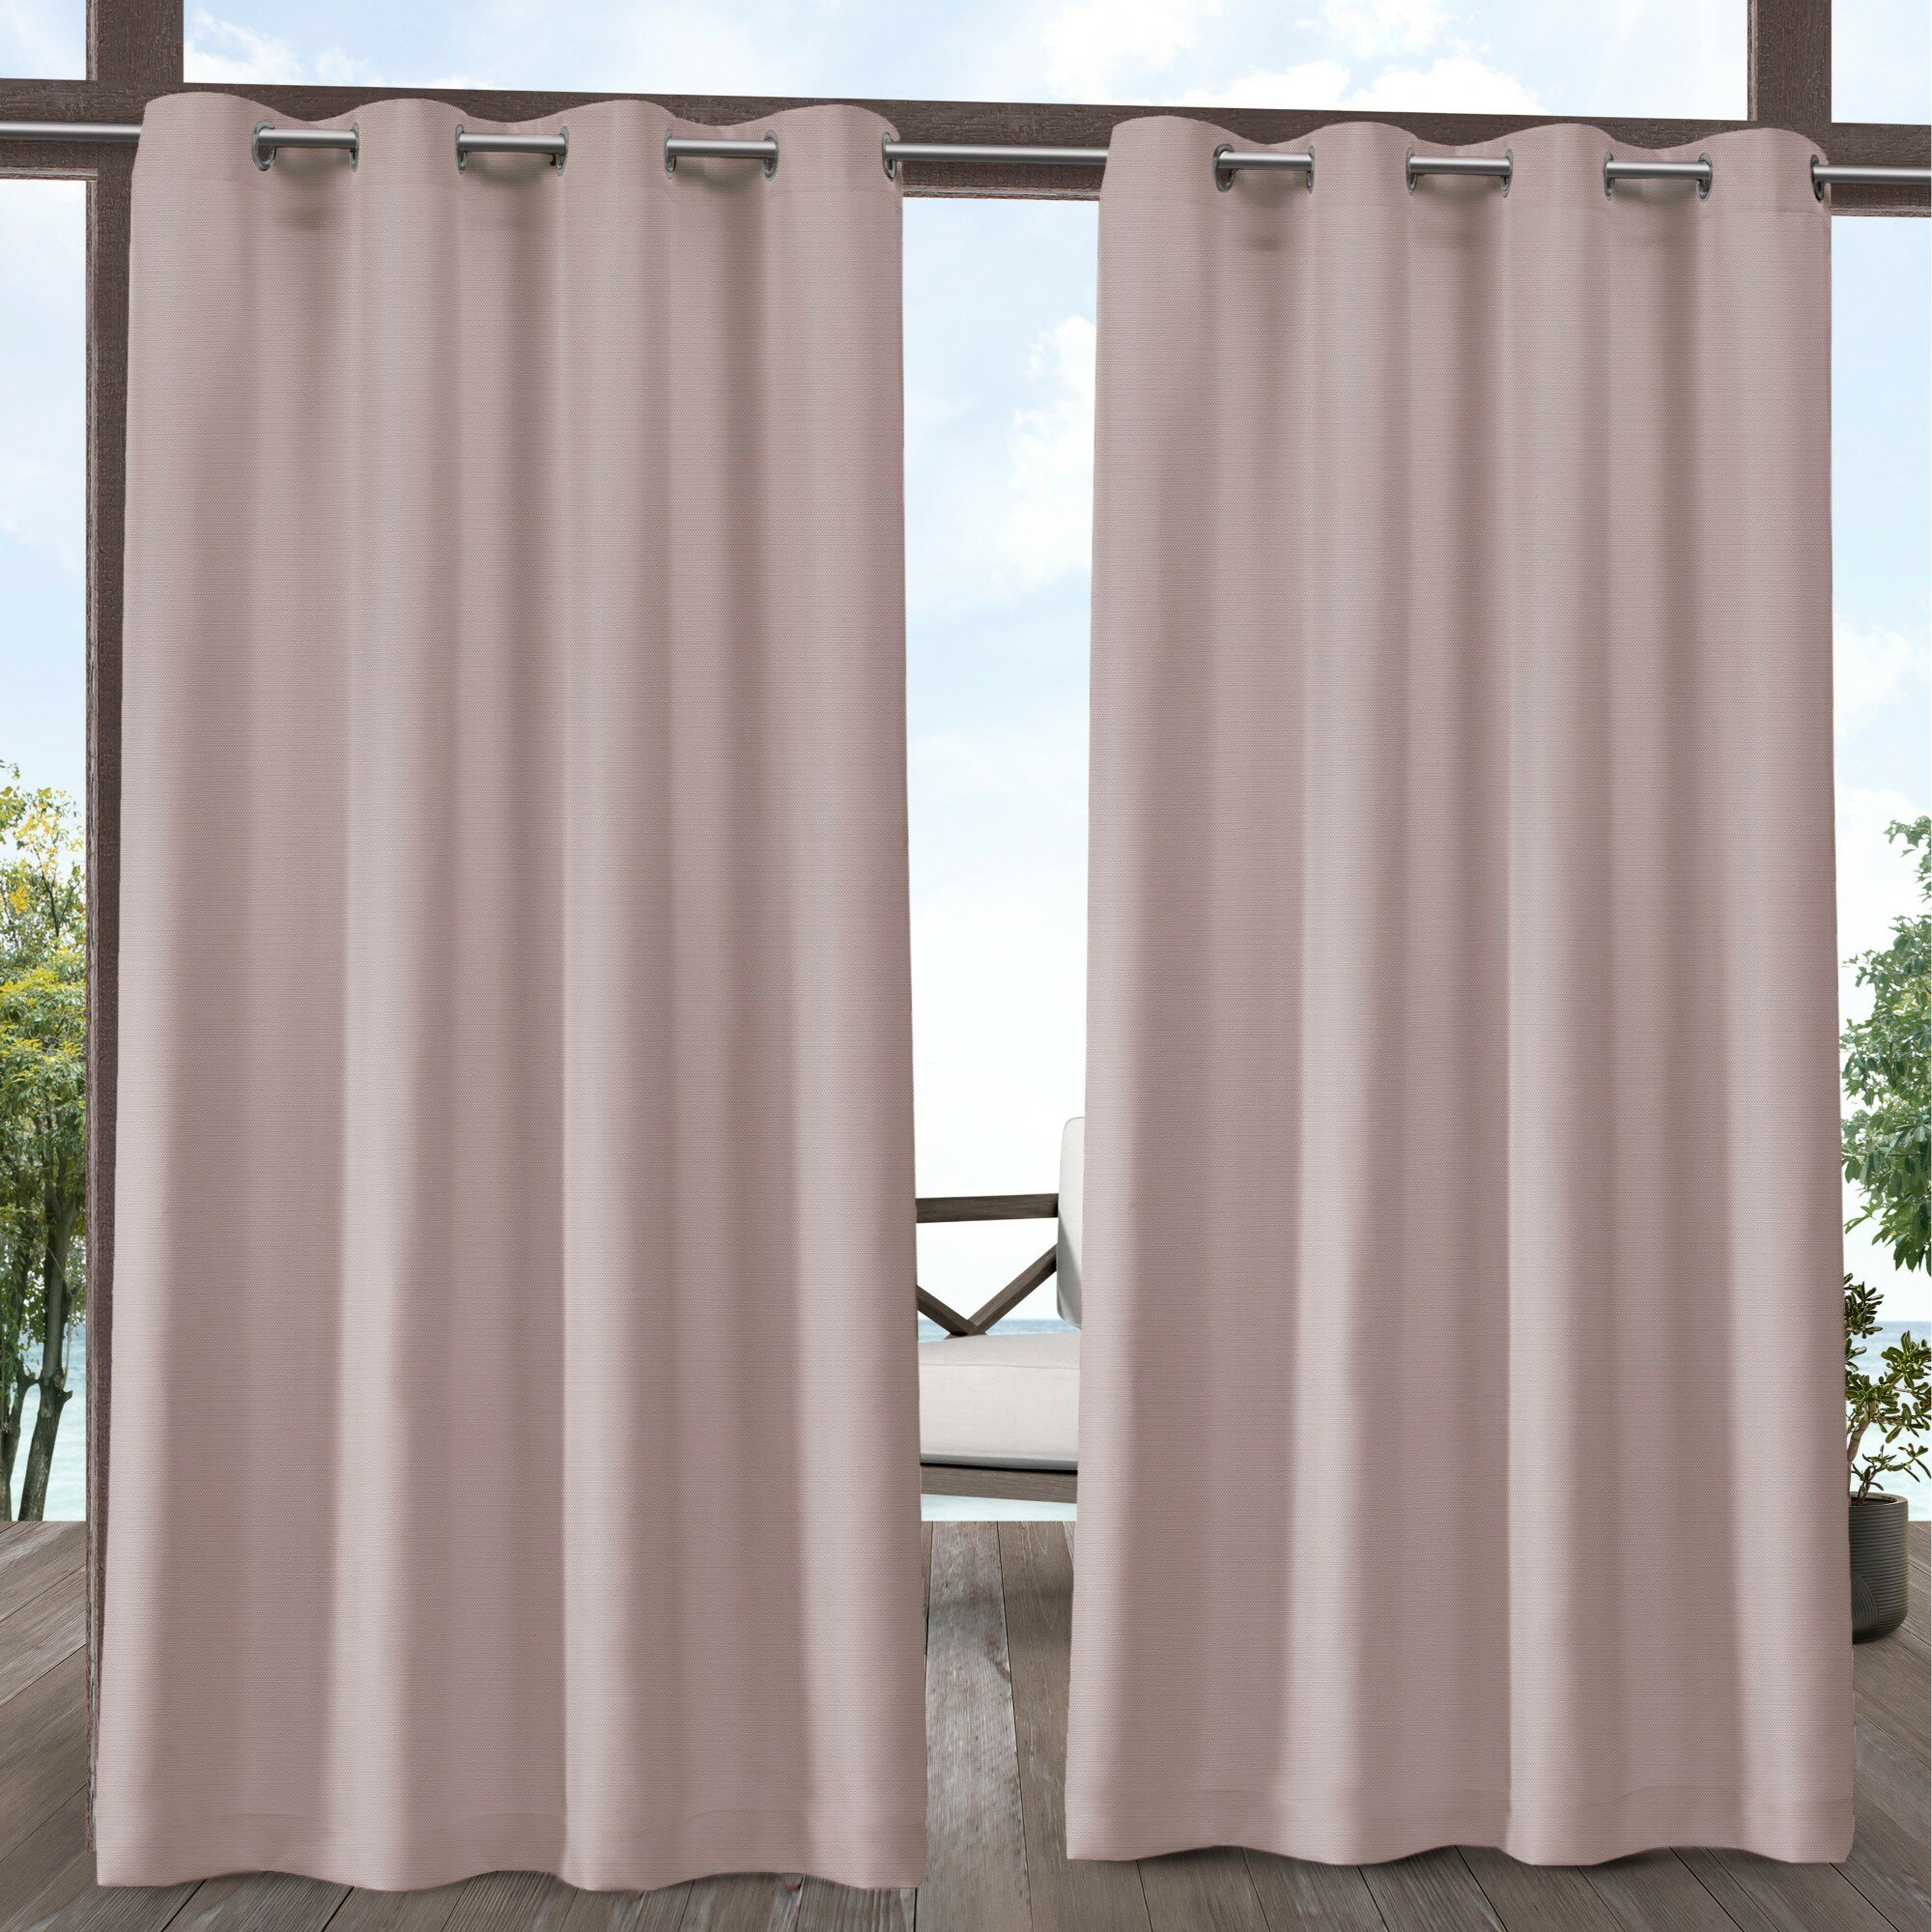 Outdoor Sheer Curtains Drapes Free Shipping Over 35 Wayfair